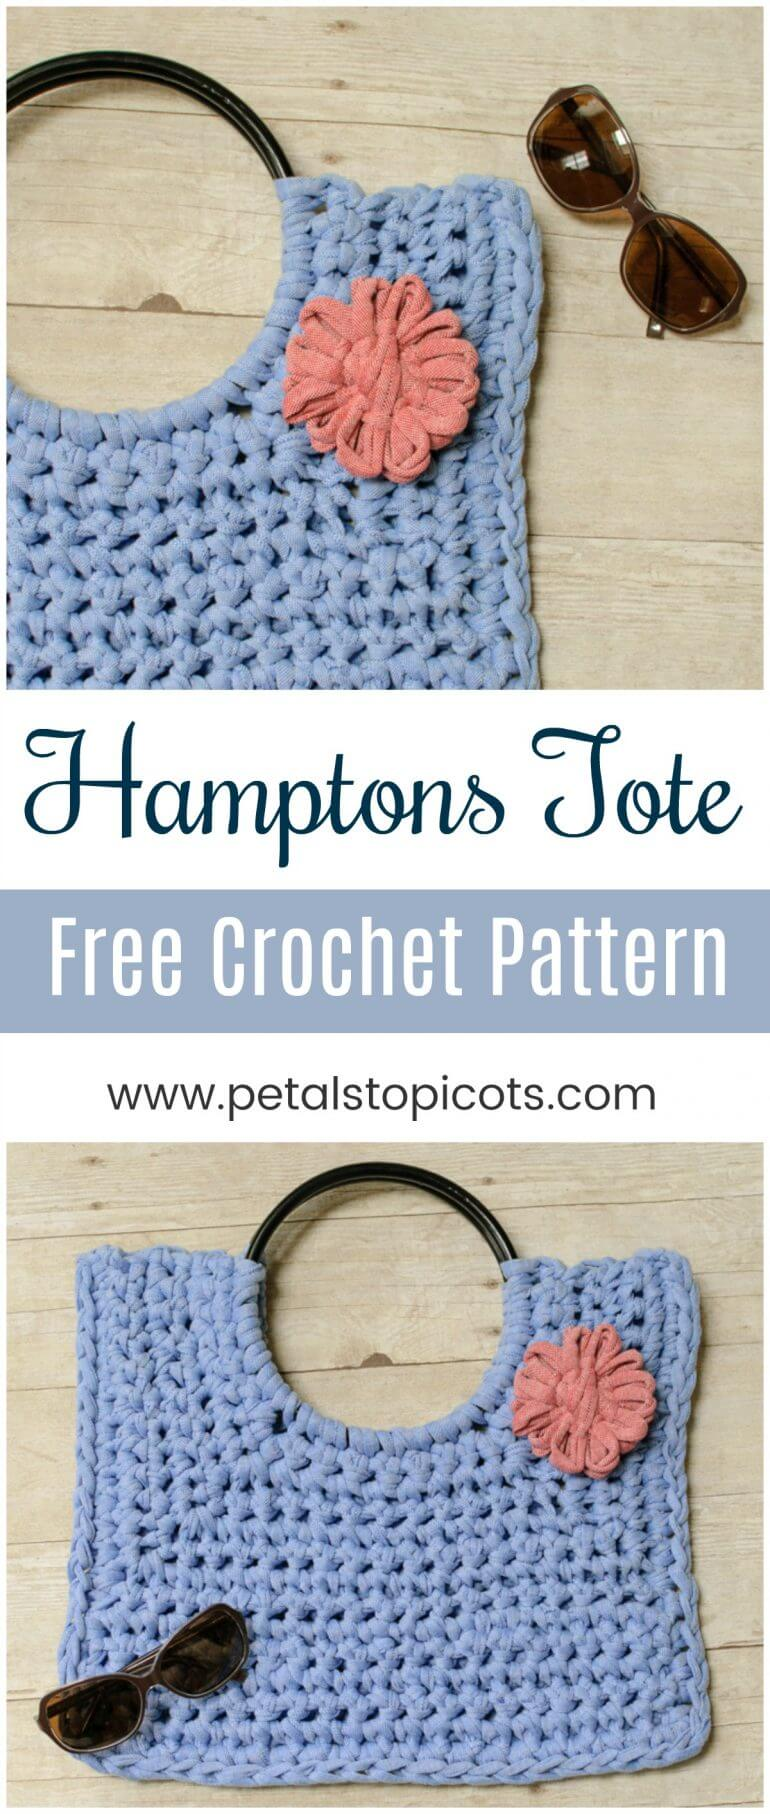 Whether you are lunching on the pier or shopping in town, you are going to love showing off your Hamptons Tote! This T-shirt yarn crochet bag pattern calls for just 1 skein of T-shirt yarn to make. Add a flower embellishment for extra interest or let the bag shine on it's own ... the choice is yours! #petalstopicots